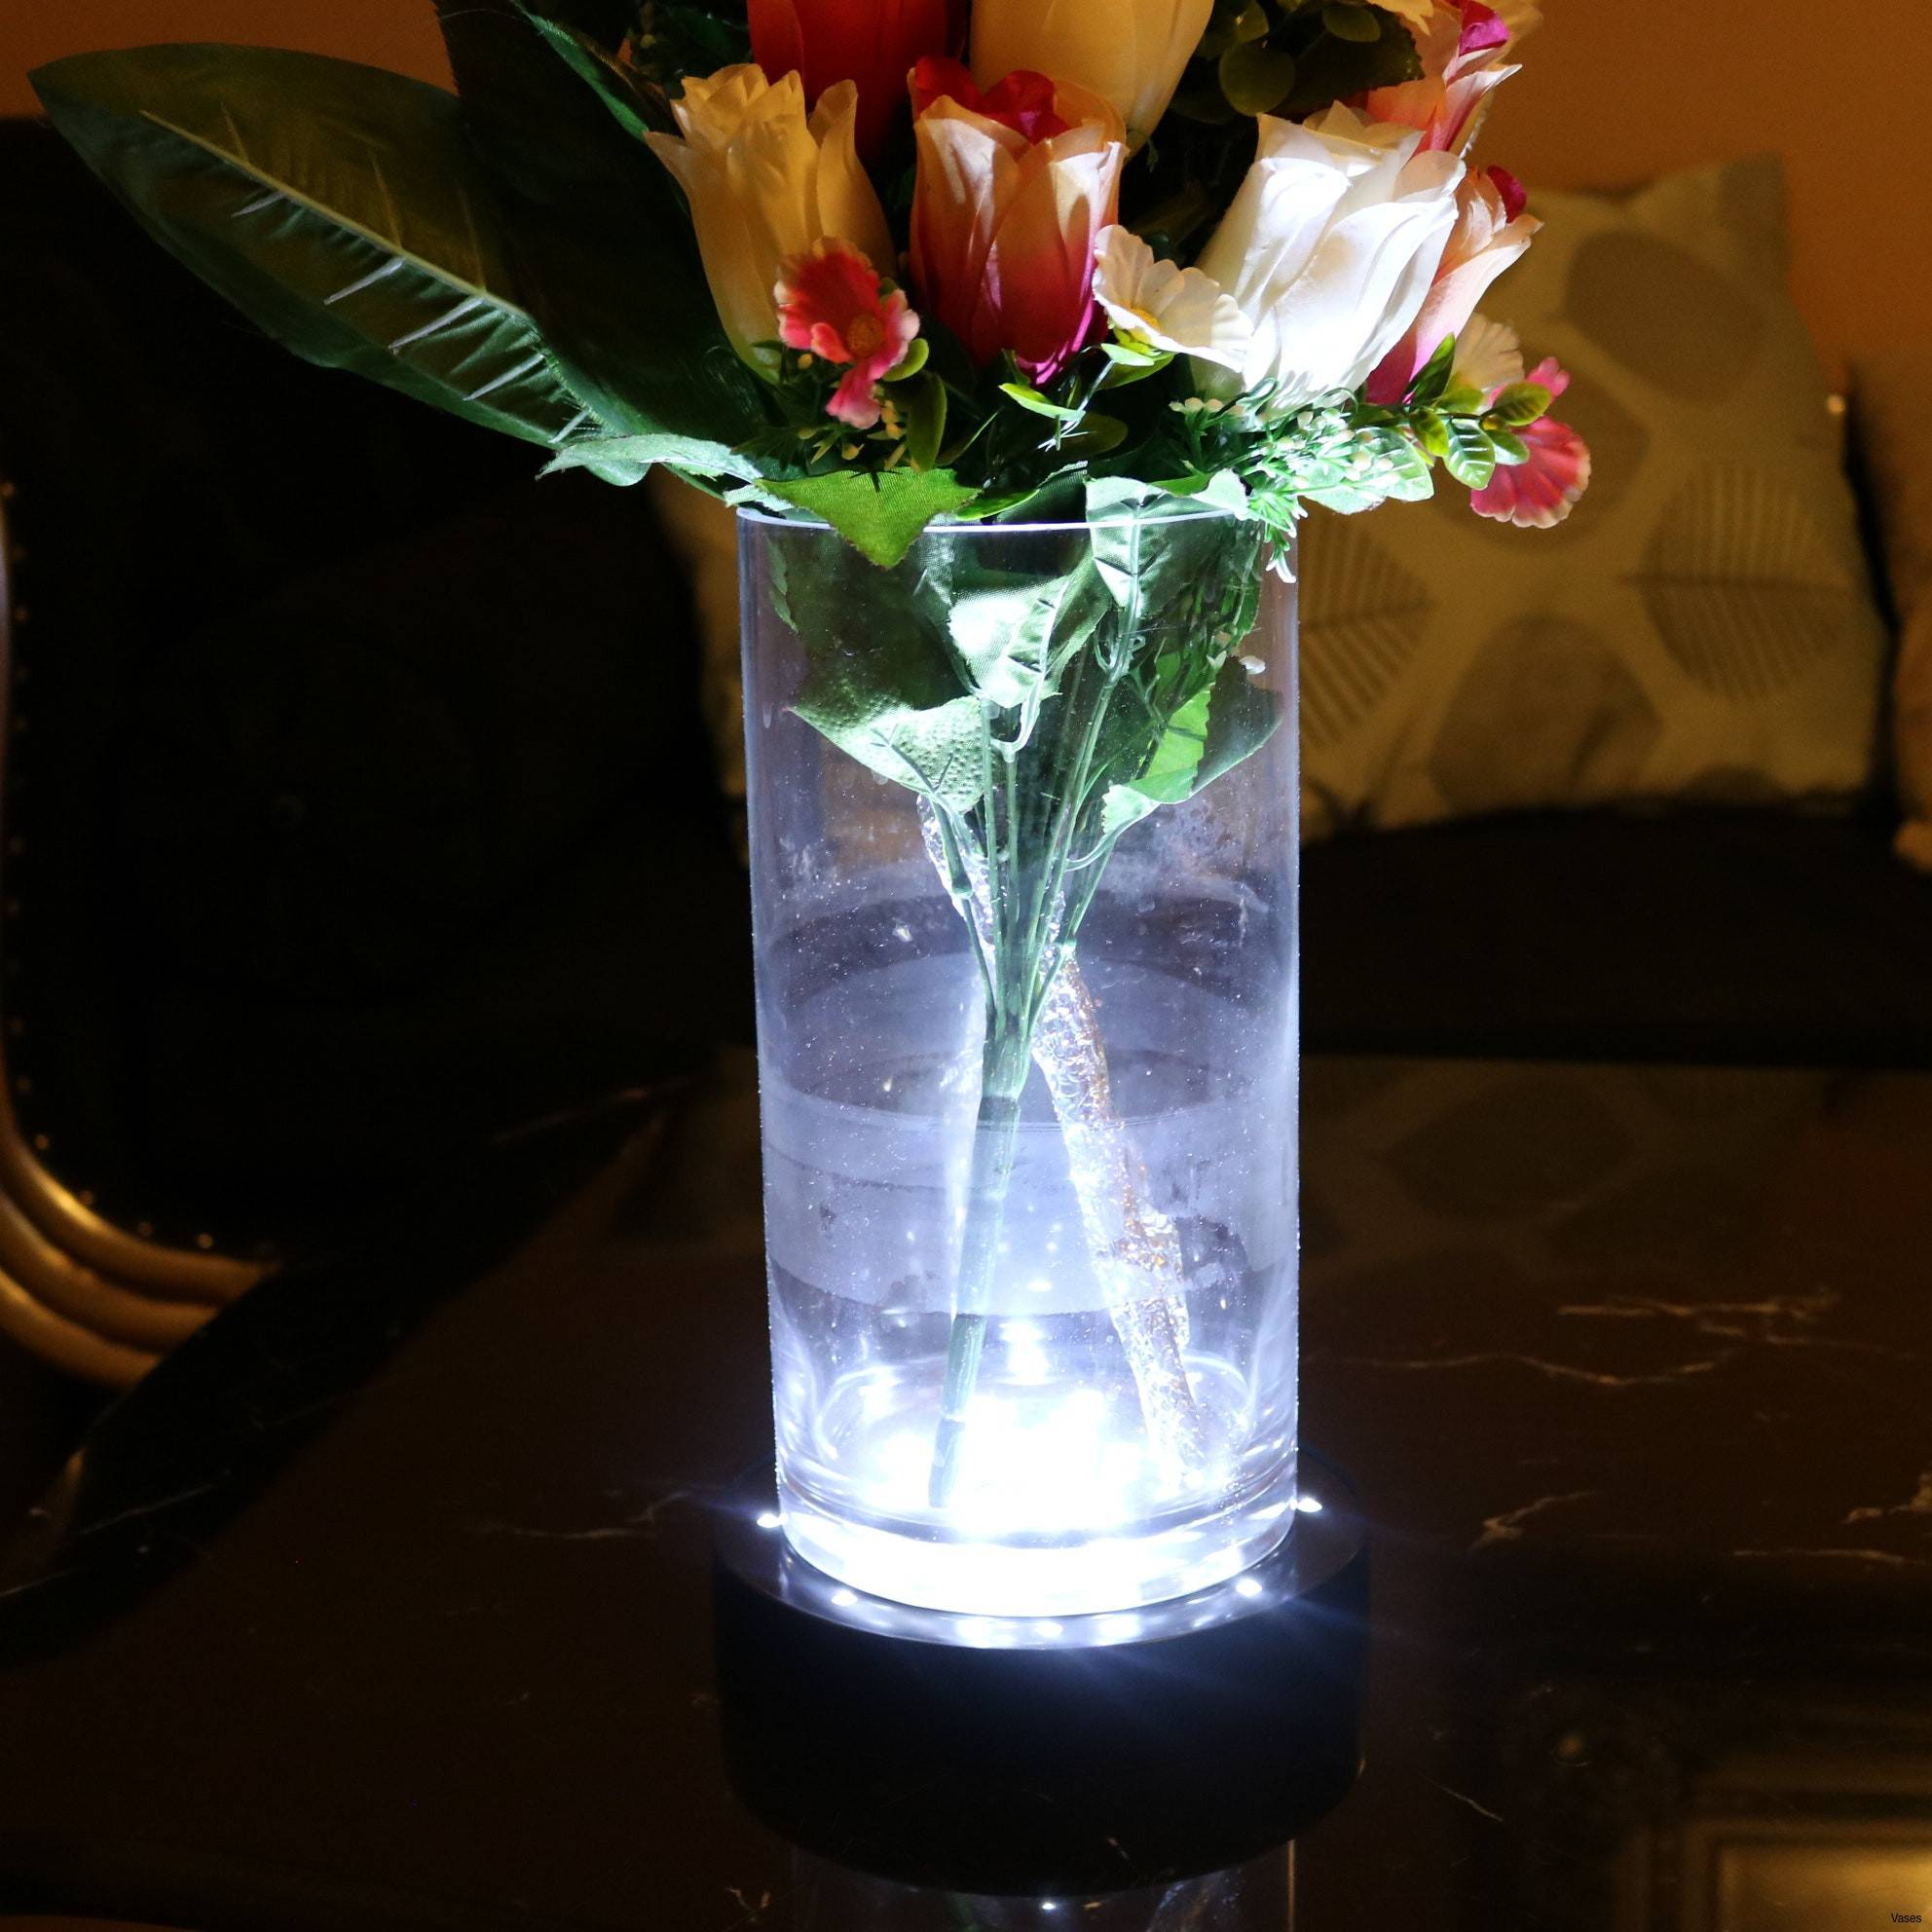 clear plastic vases of photos of plastic trumpet vase vases artificial plants collection with regard to plastic trumpet vase image vases disposable plastic single cheap flower rose vasei 0d